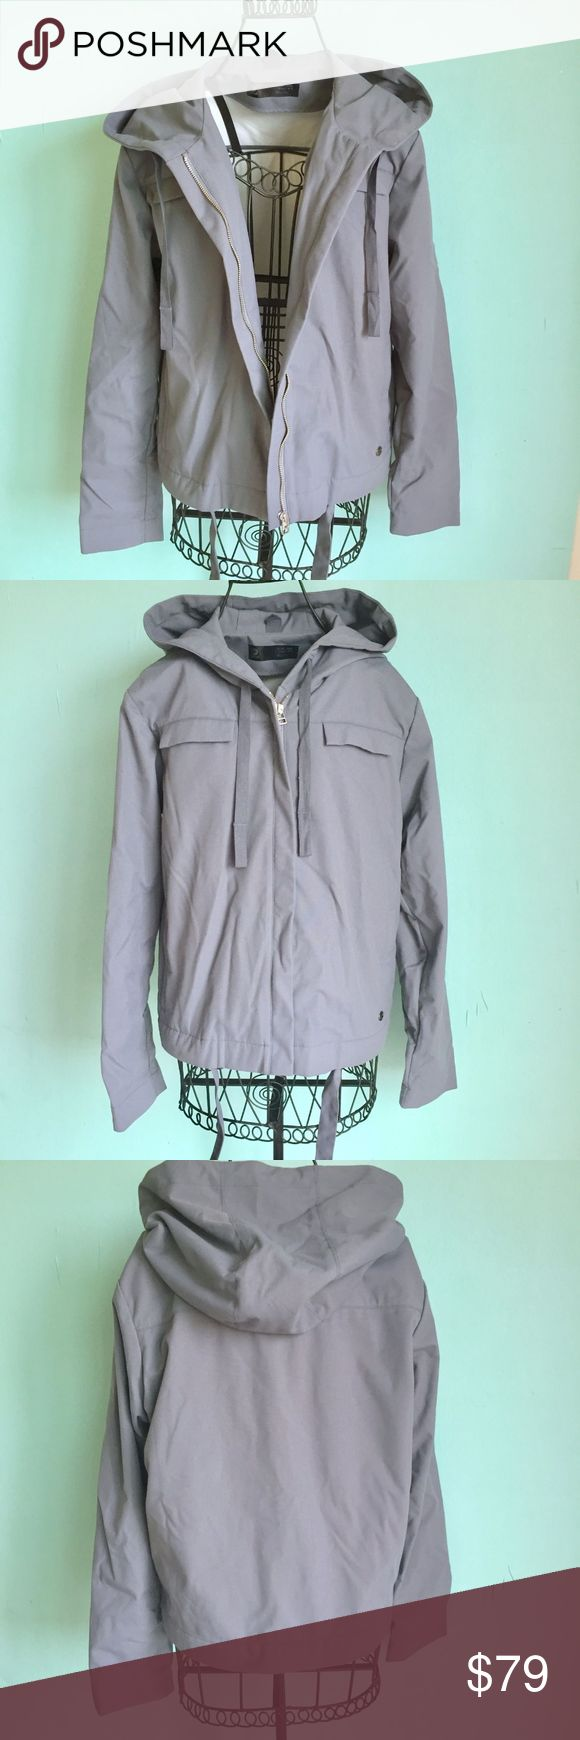 Adidas Jacket Dark Grey Raincoat Windbreaker ZipUp Adidas SLVR / A000 Jacket Dark Grey Raincoat Windbreaker Women's Zip Up Hoodie. In excellent preowned condition. Size M. Hard to find. Check out my closet, bundle and give me your offer! adidas Jackets & Coats